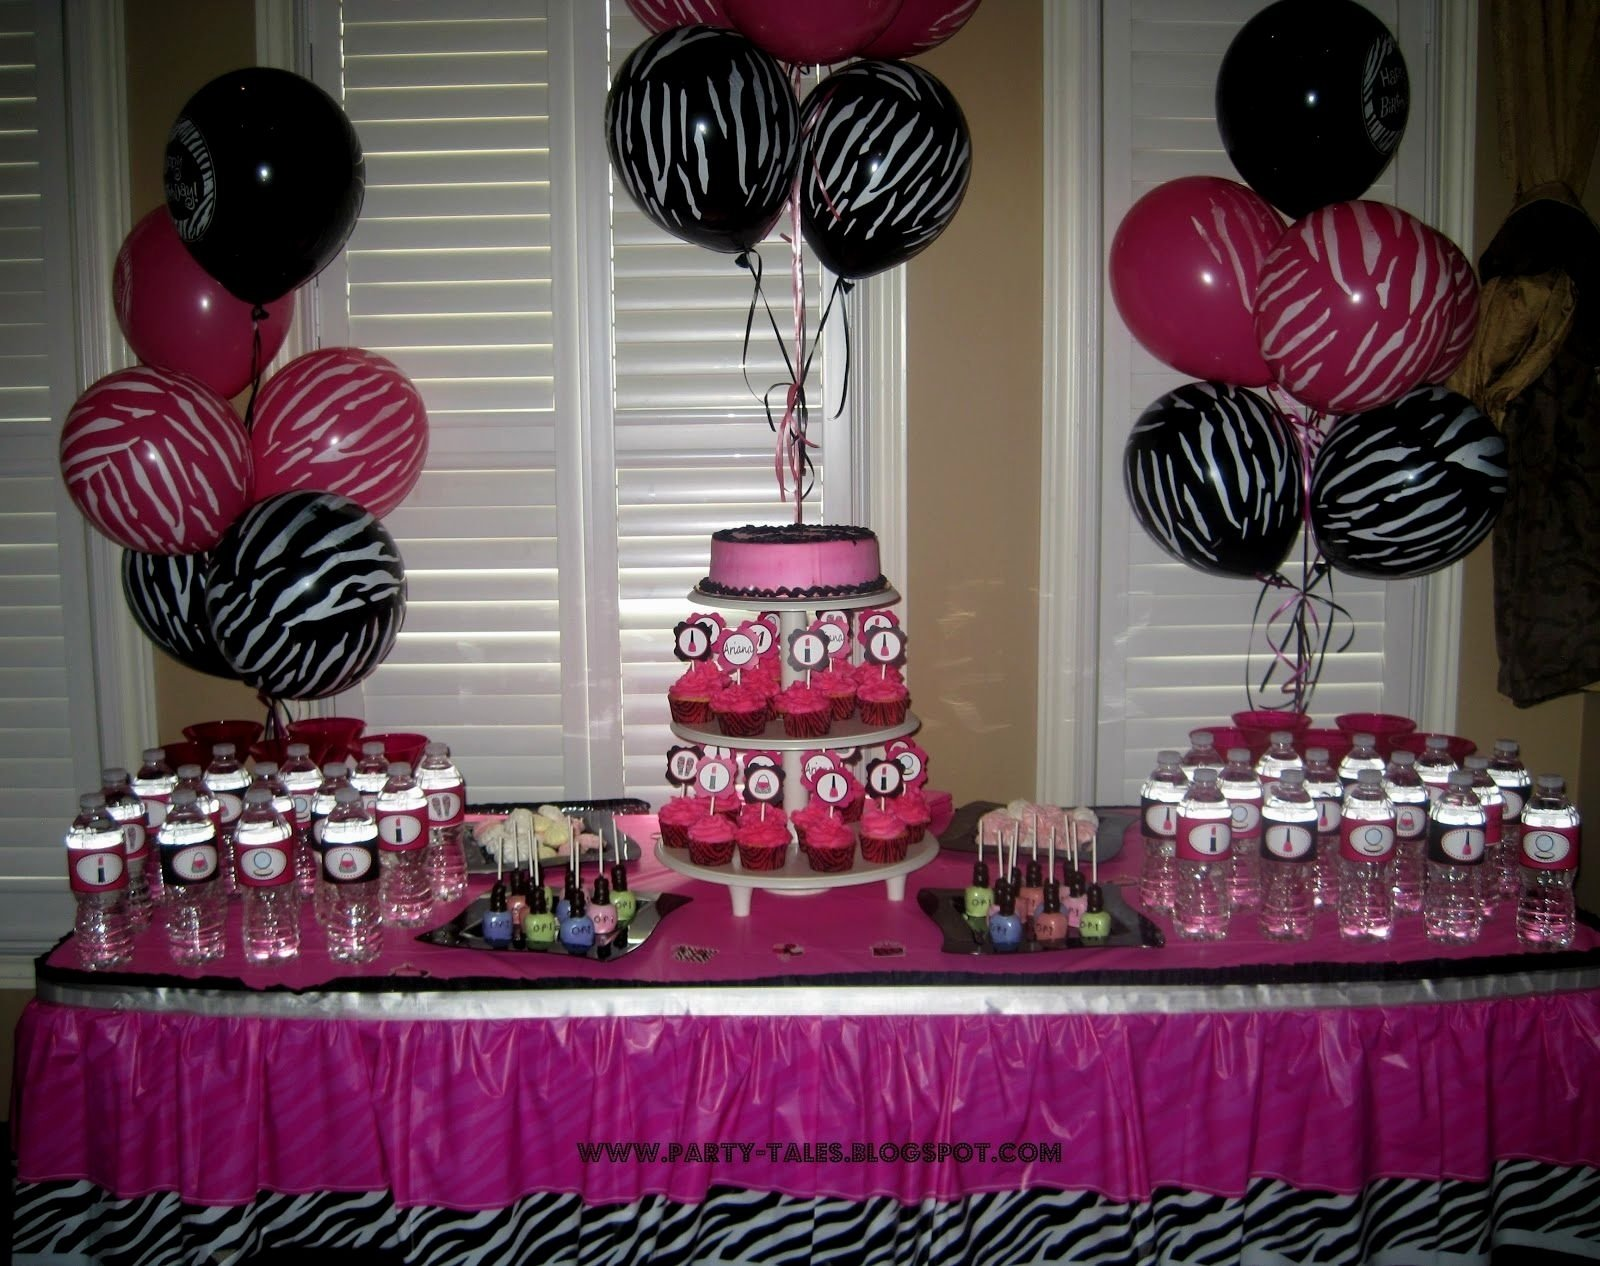 10 Perfect Pink And Black Baby Shower Ideas pink black zebra print baby shower decorations e280a2 baby showers design 2021